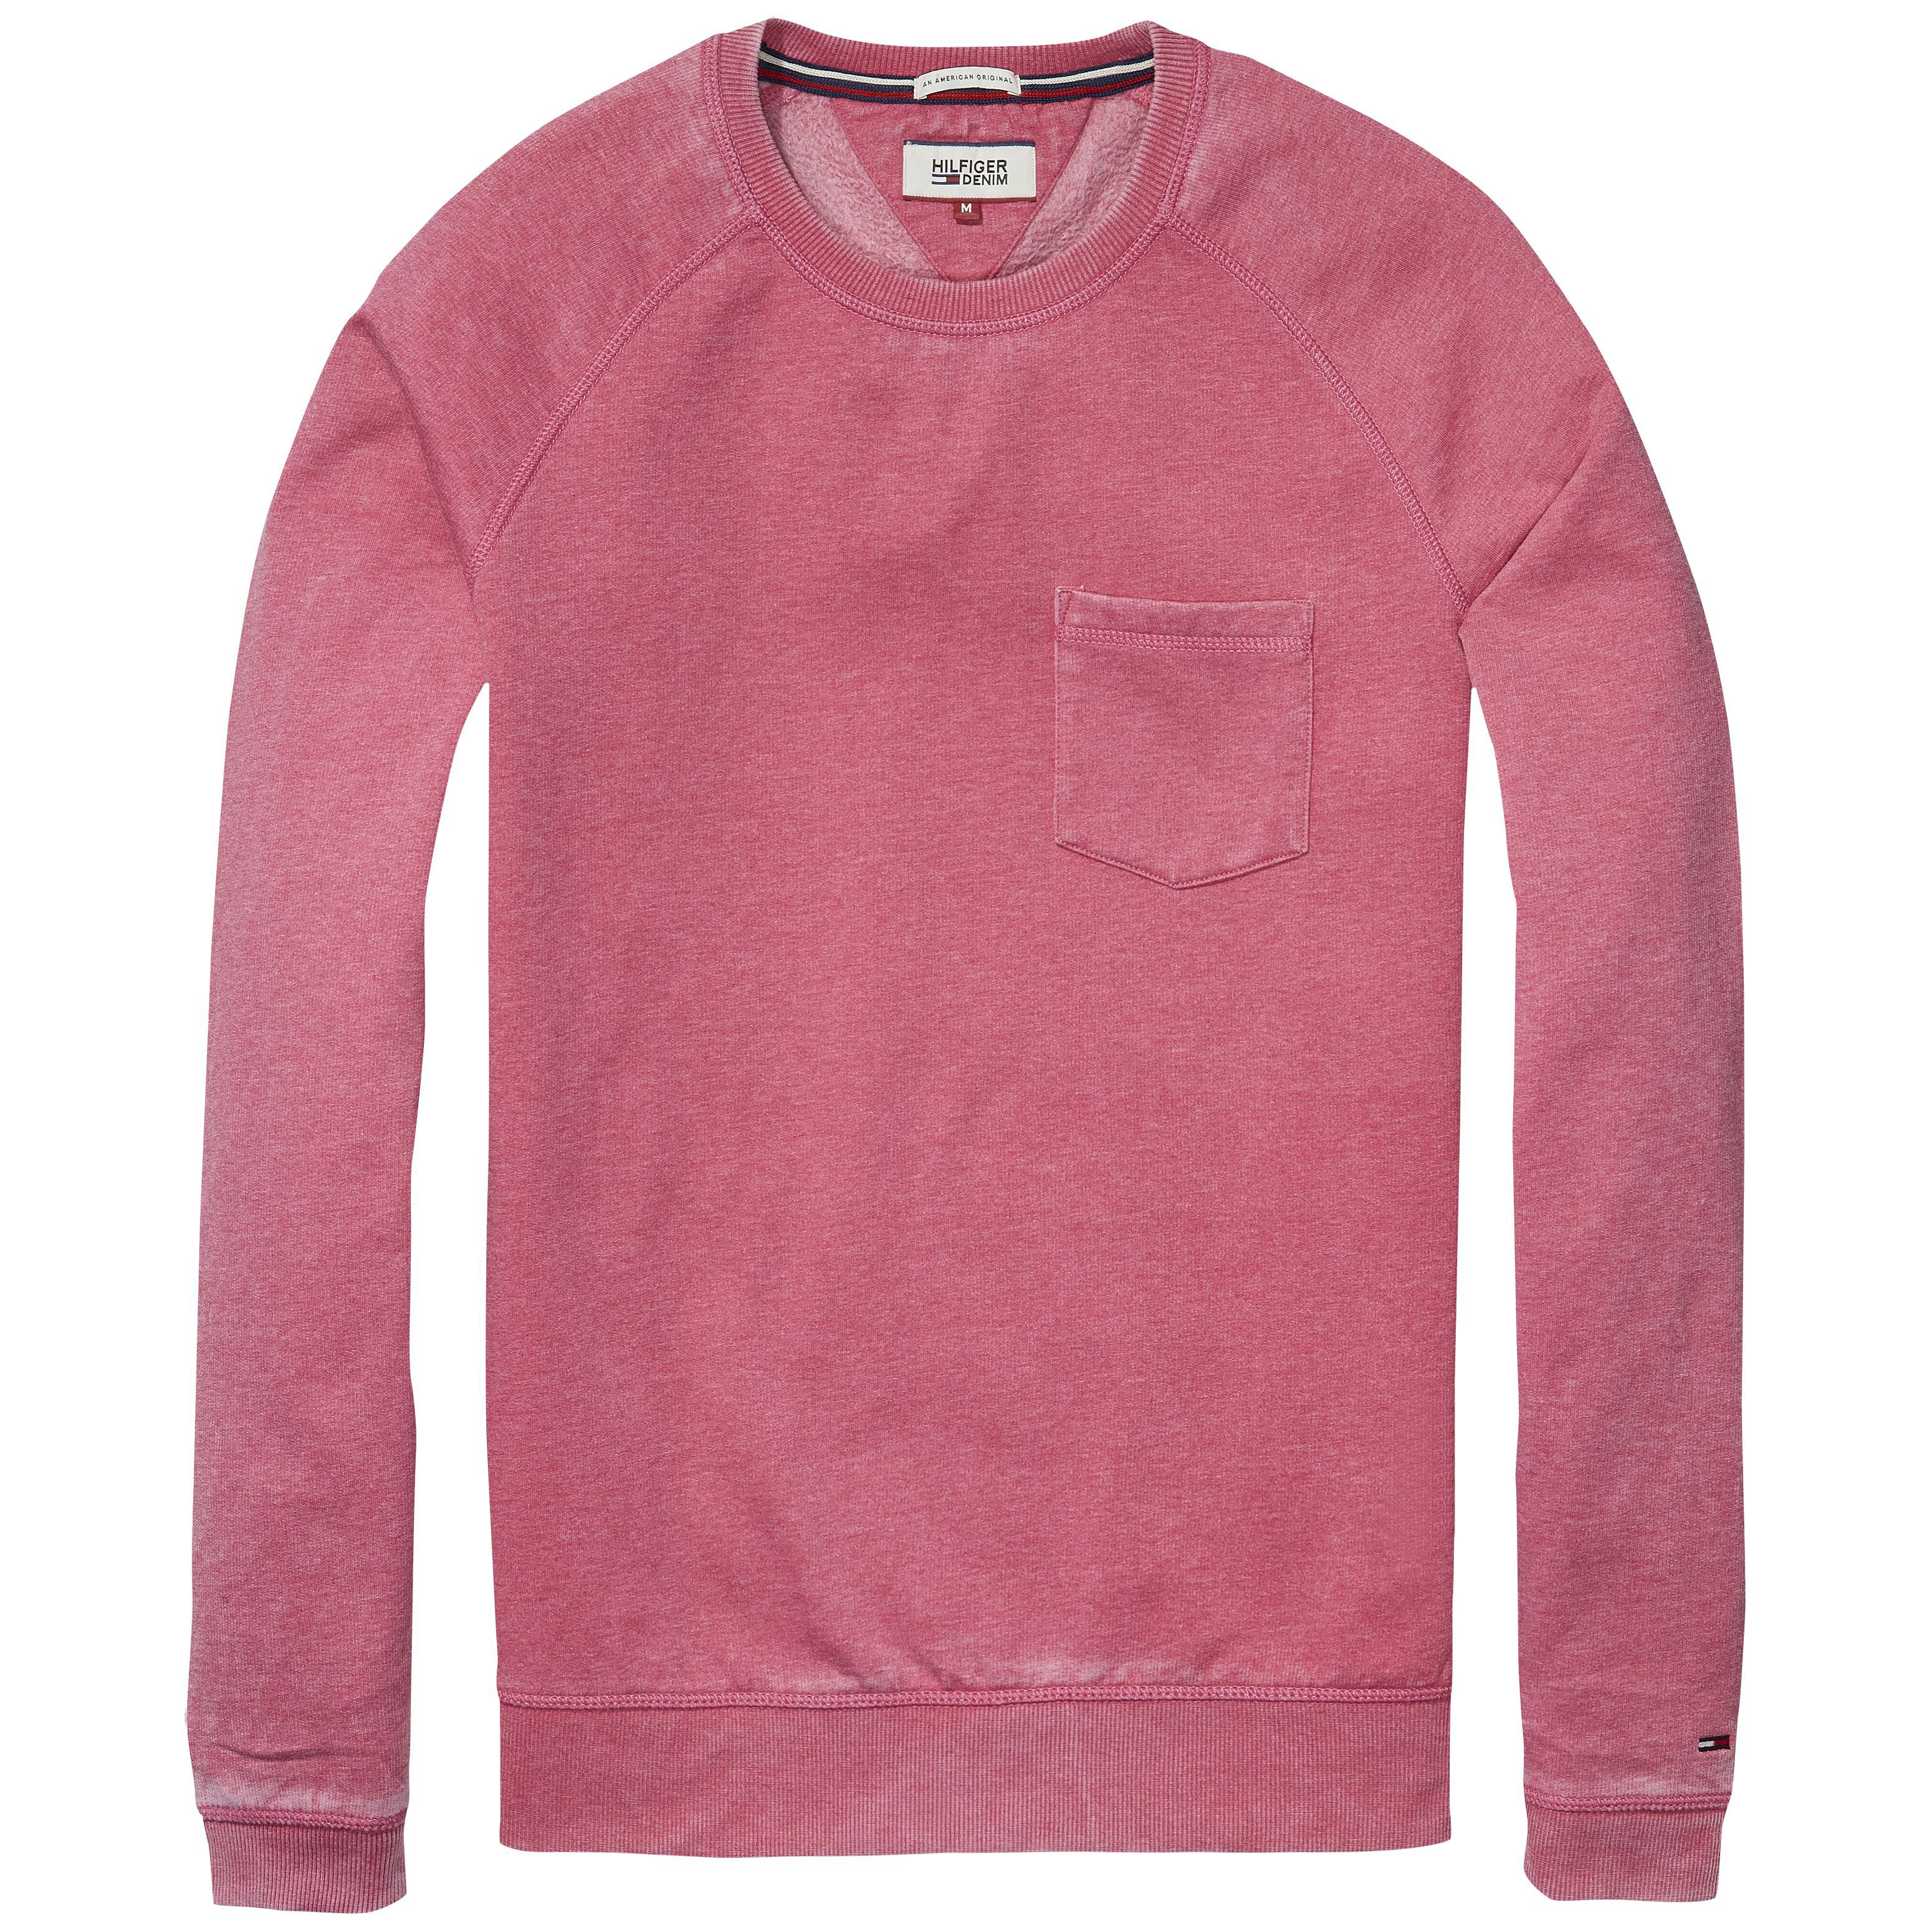 Men's Tommy Hilfiger burnout sweatshirt, Pink